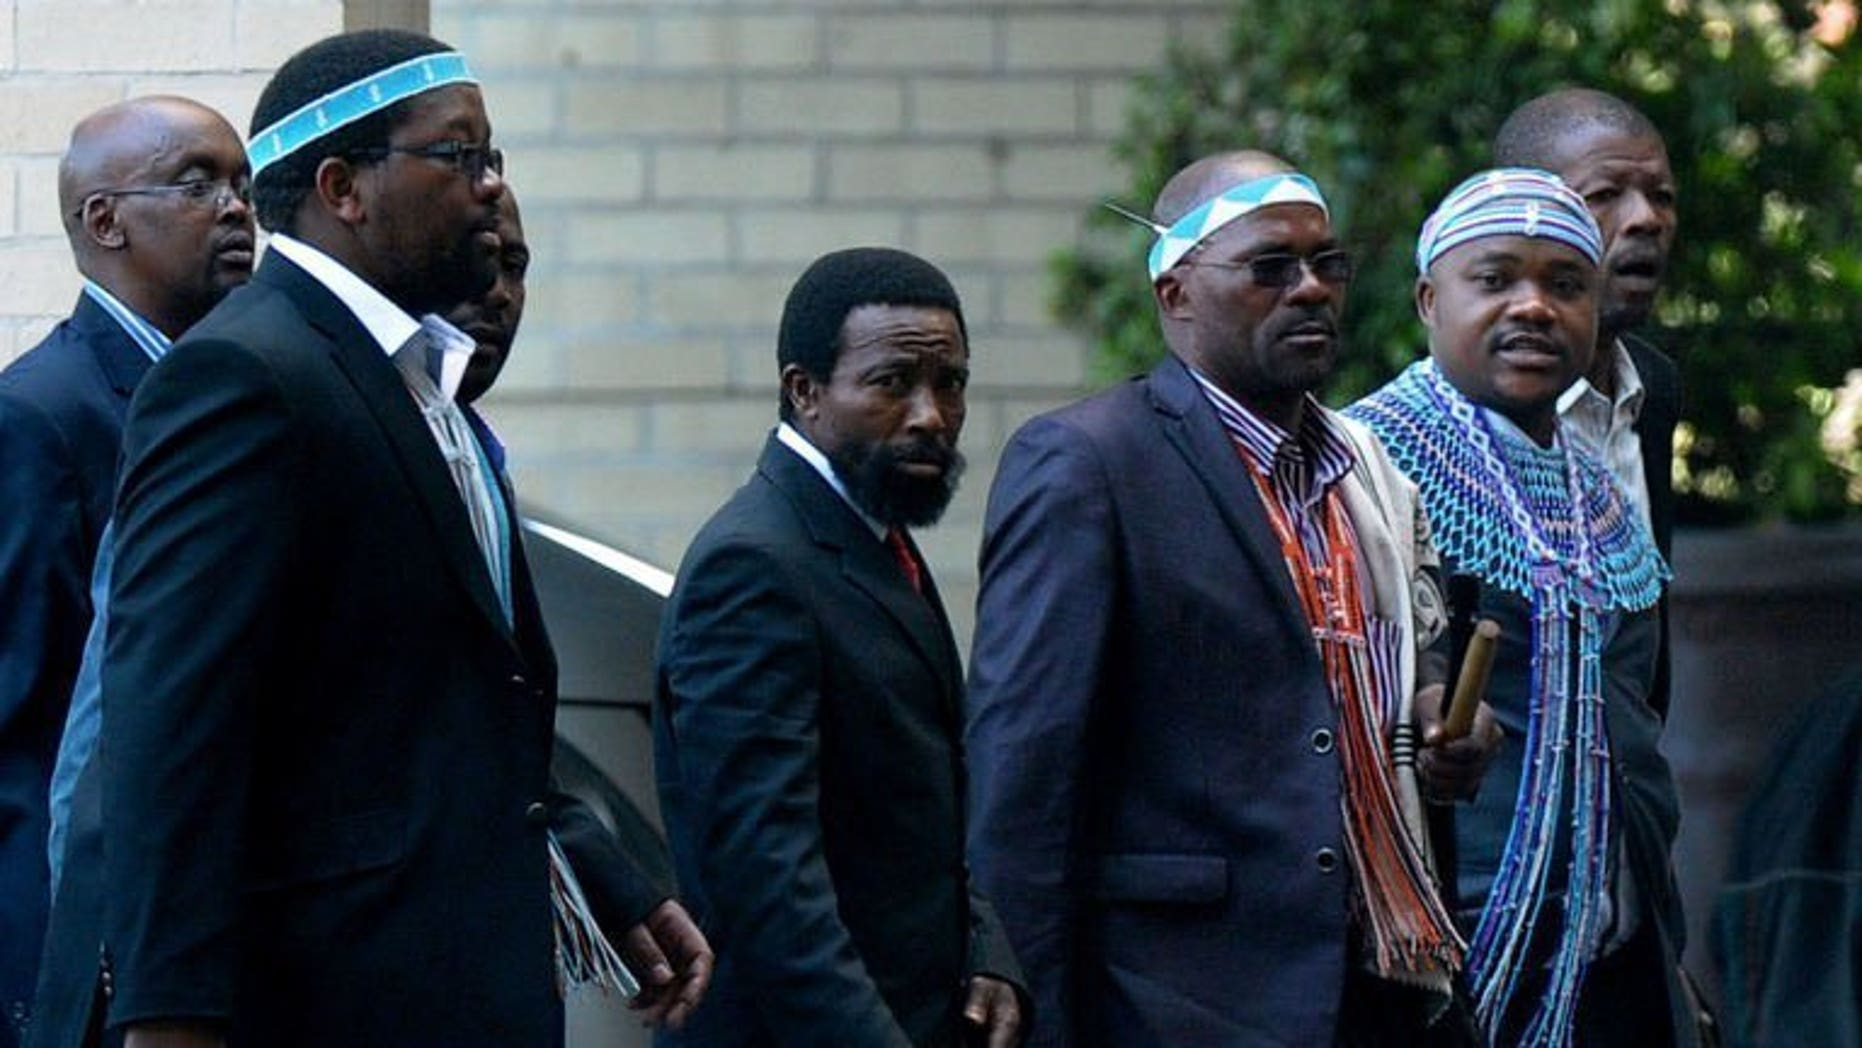 Thembu King Buyelekhaya Dalindyebo (C) flanked by chiefs, arrives on July 9, 2013 to visit former South African President Nelson Mandela at the MediClinic Heart Hospital in Pretoria. Nelson Mandela is conscious and recognises visitors, the king of his Thembu tribe told AFP Wednesday, after visiting the global icon in hospital.